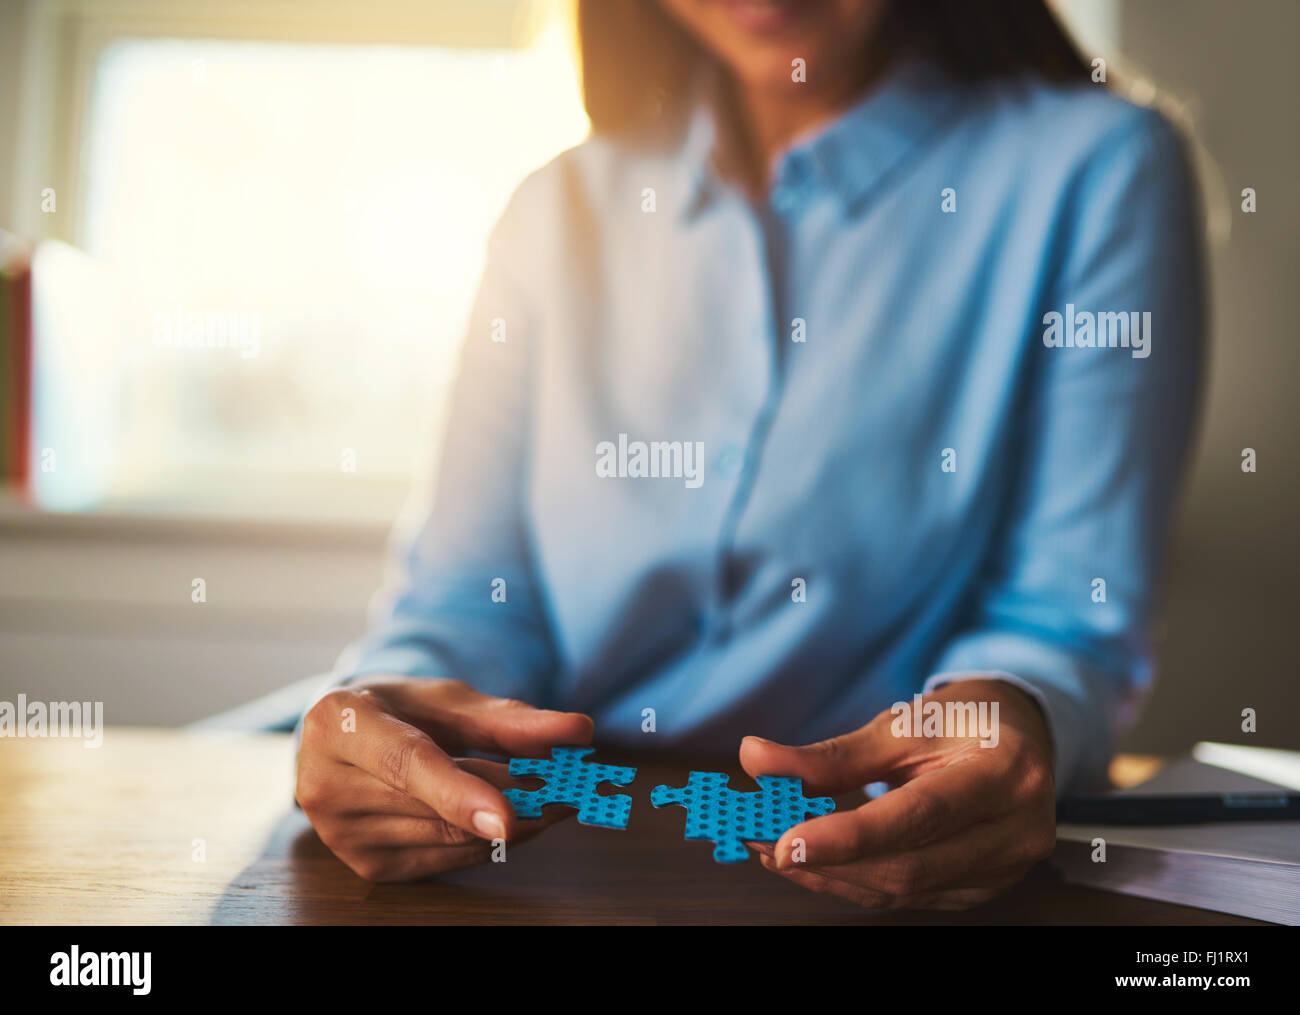 Business woman connecting puzzles, closeup of hands, success concept - Stock Image